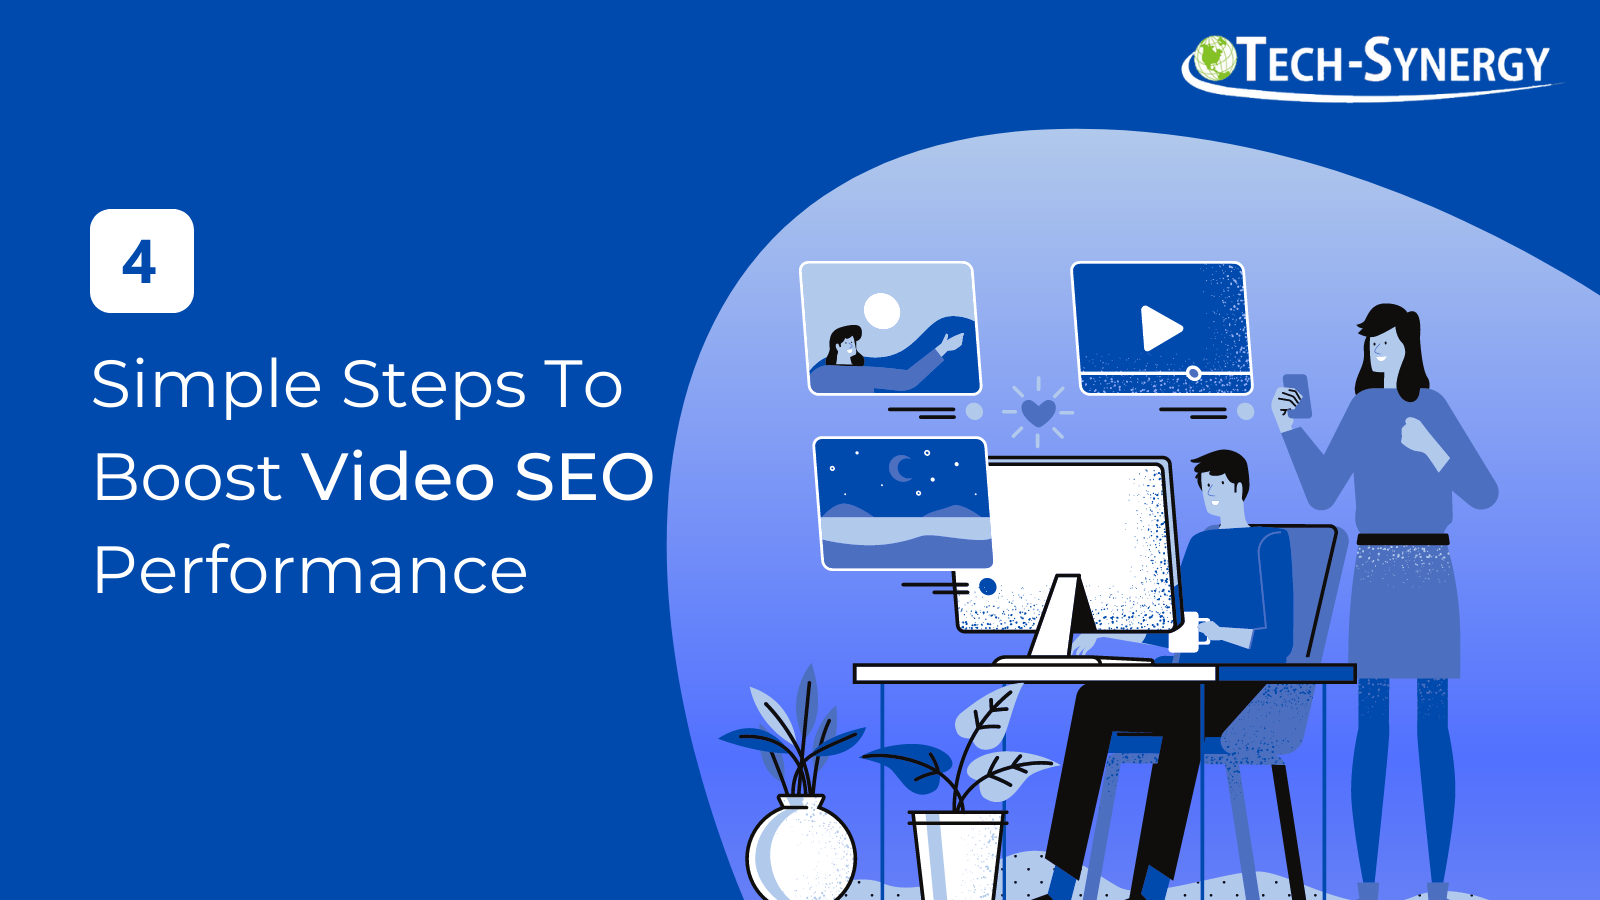 4 Simple Steps To Boost Video SEO Performance